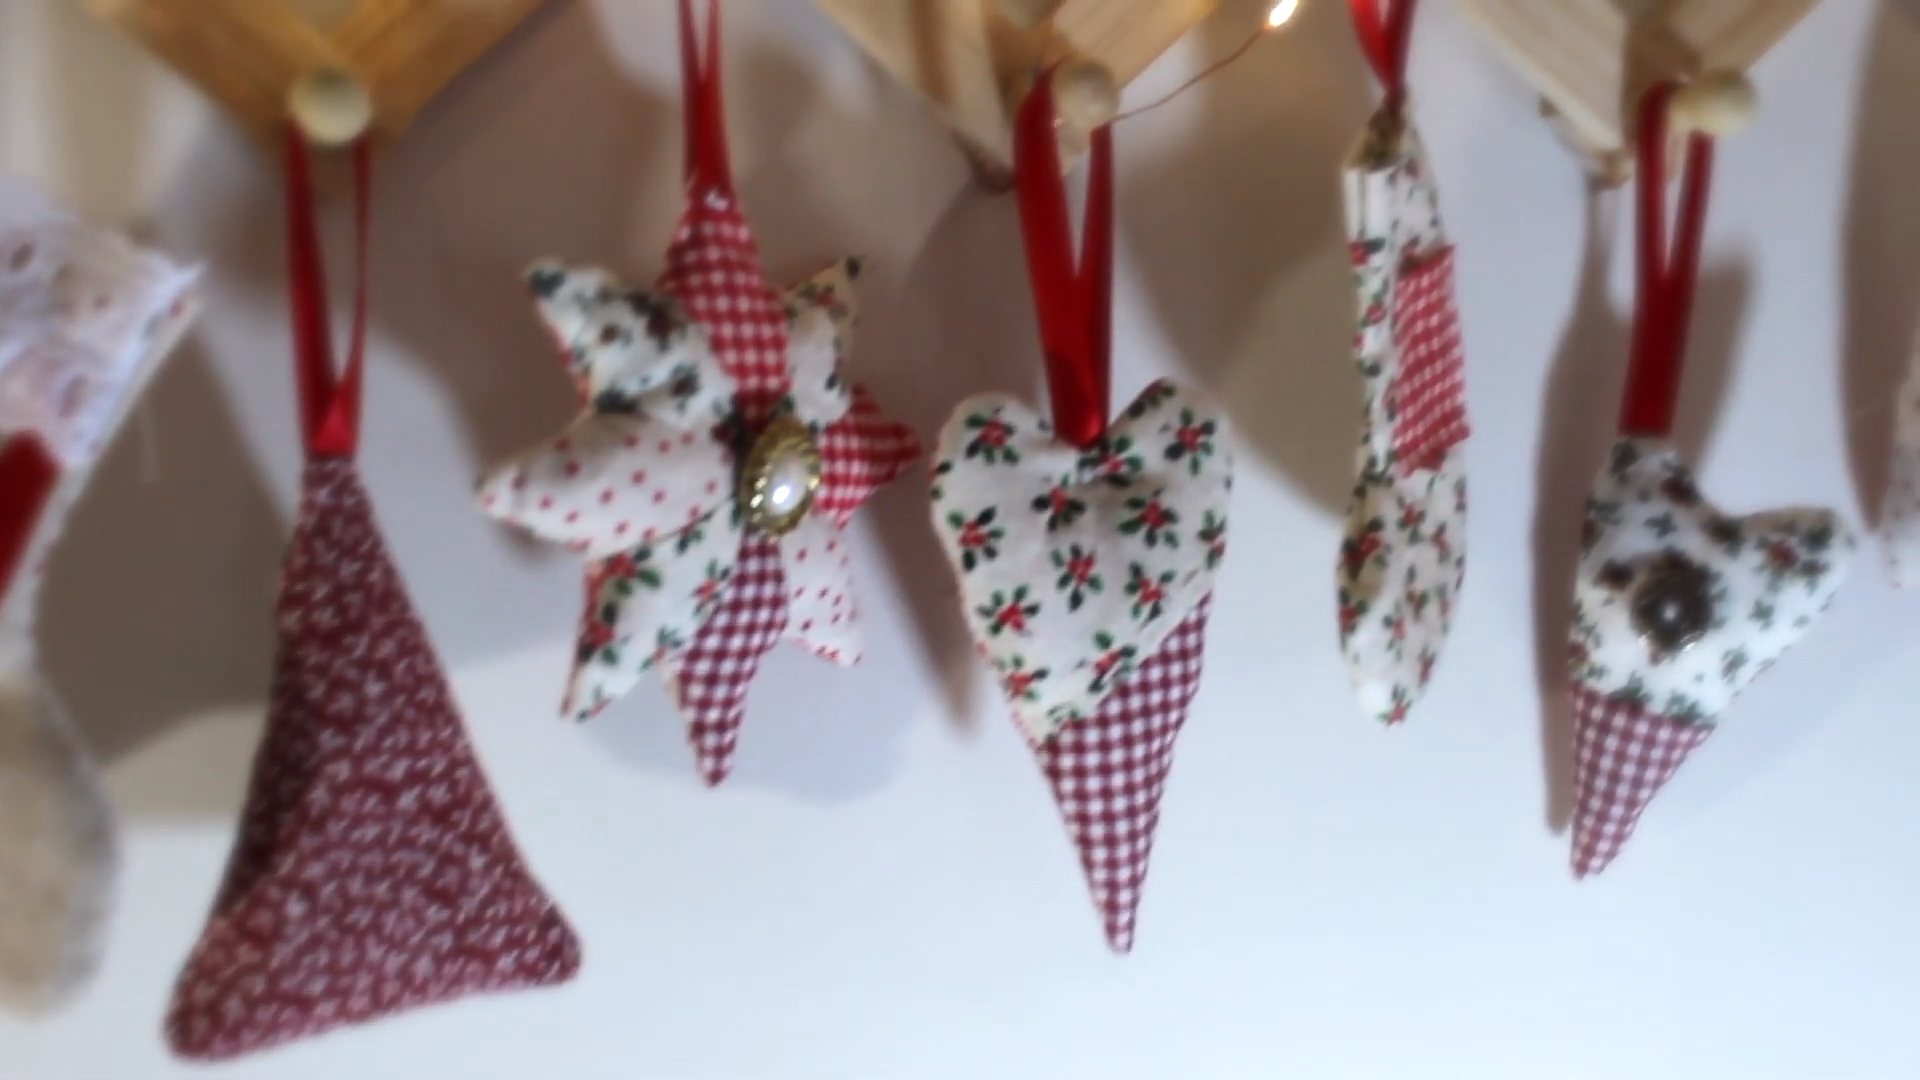 How To Make Christmas Decorations On A Budget hanging up